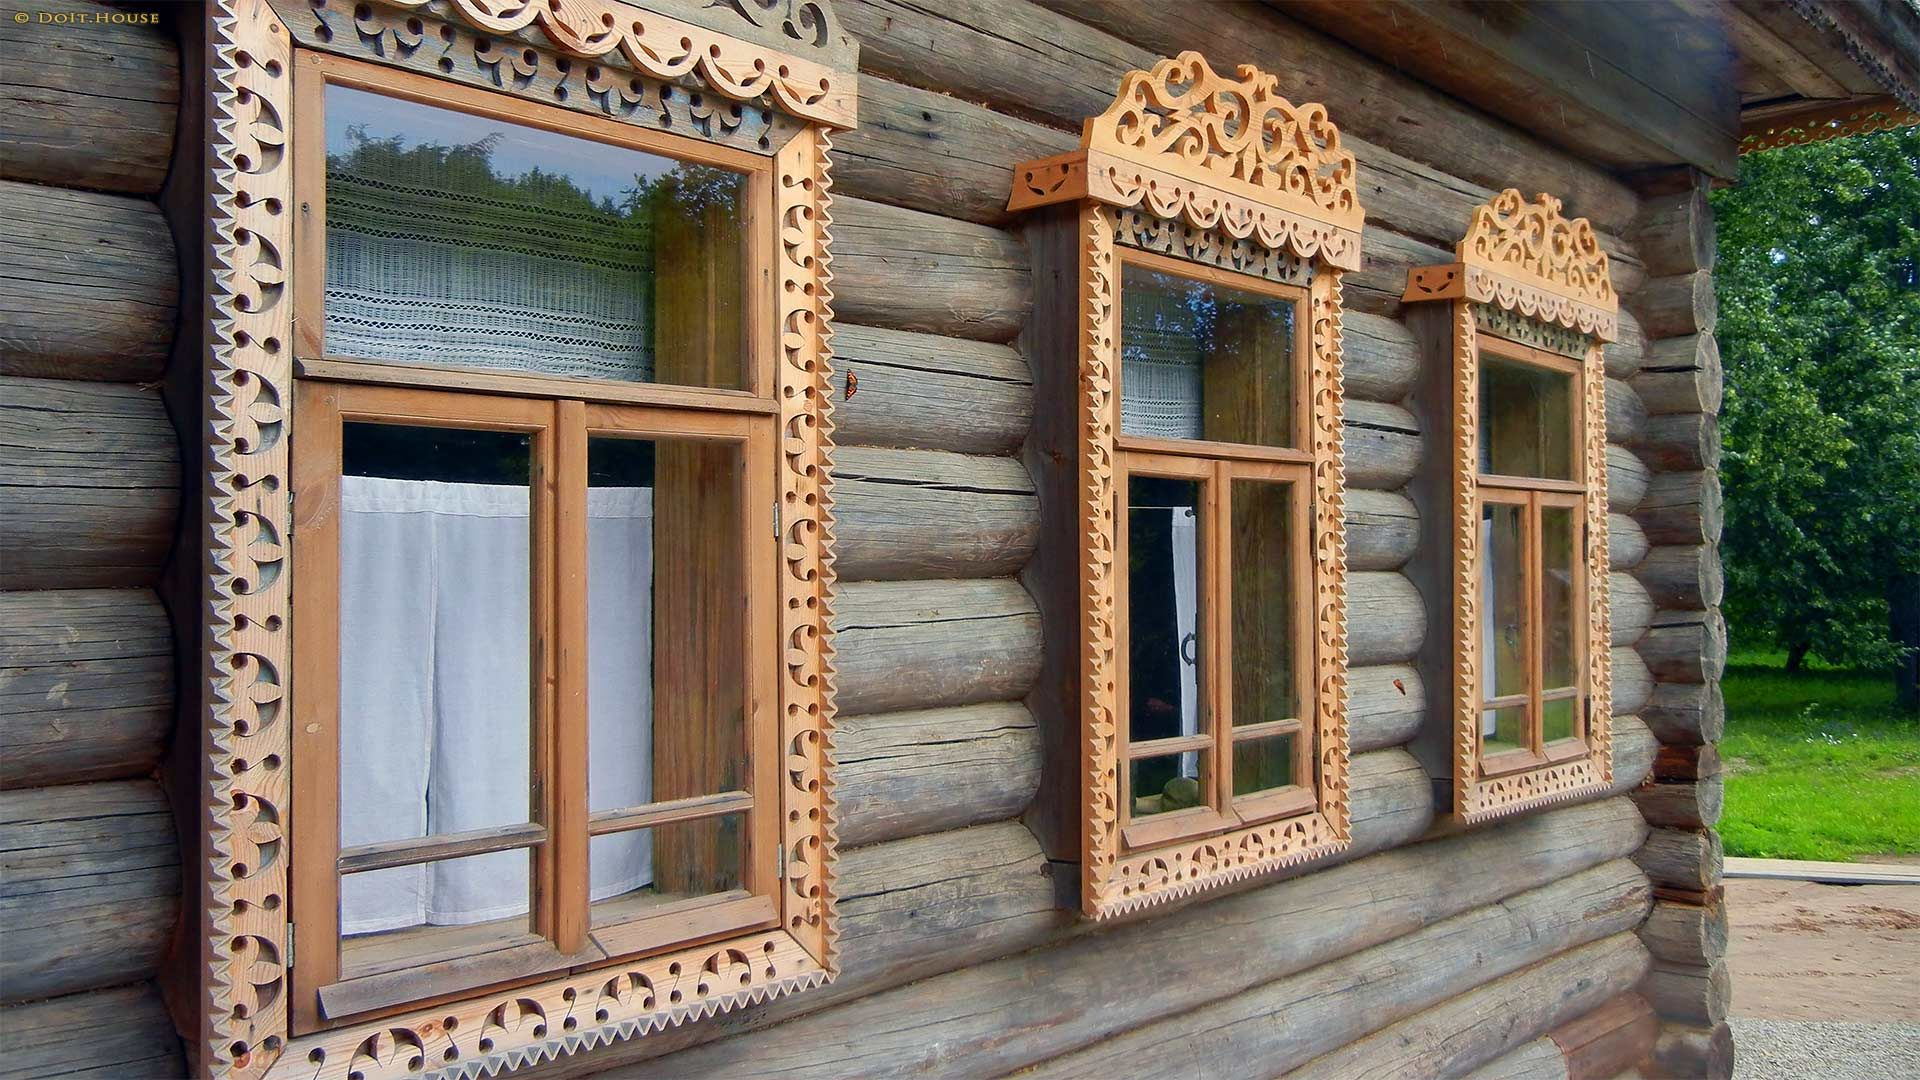 Dacha house in Russia Bud house decorating Pinterest